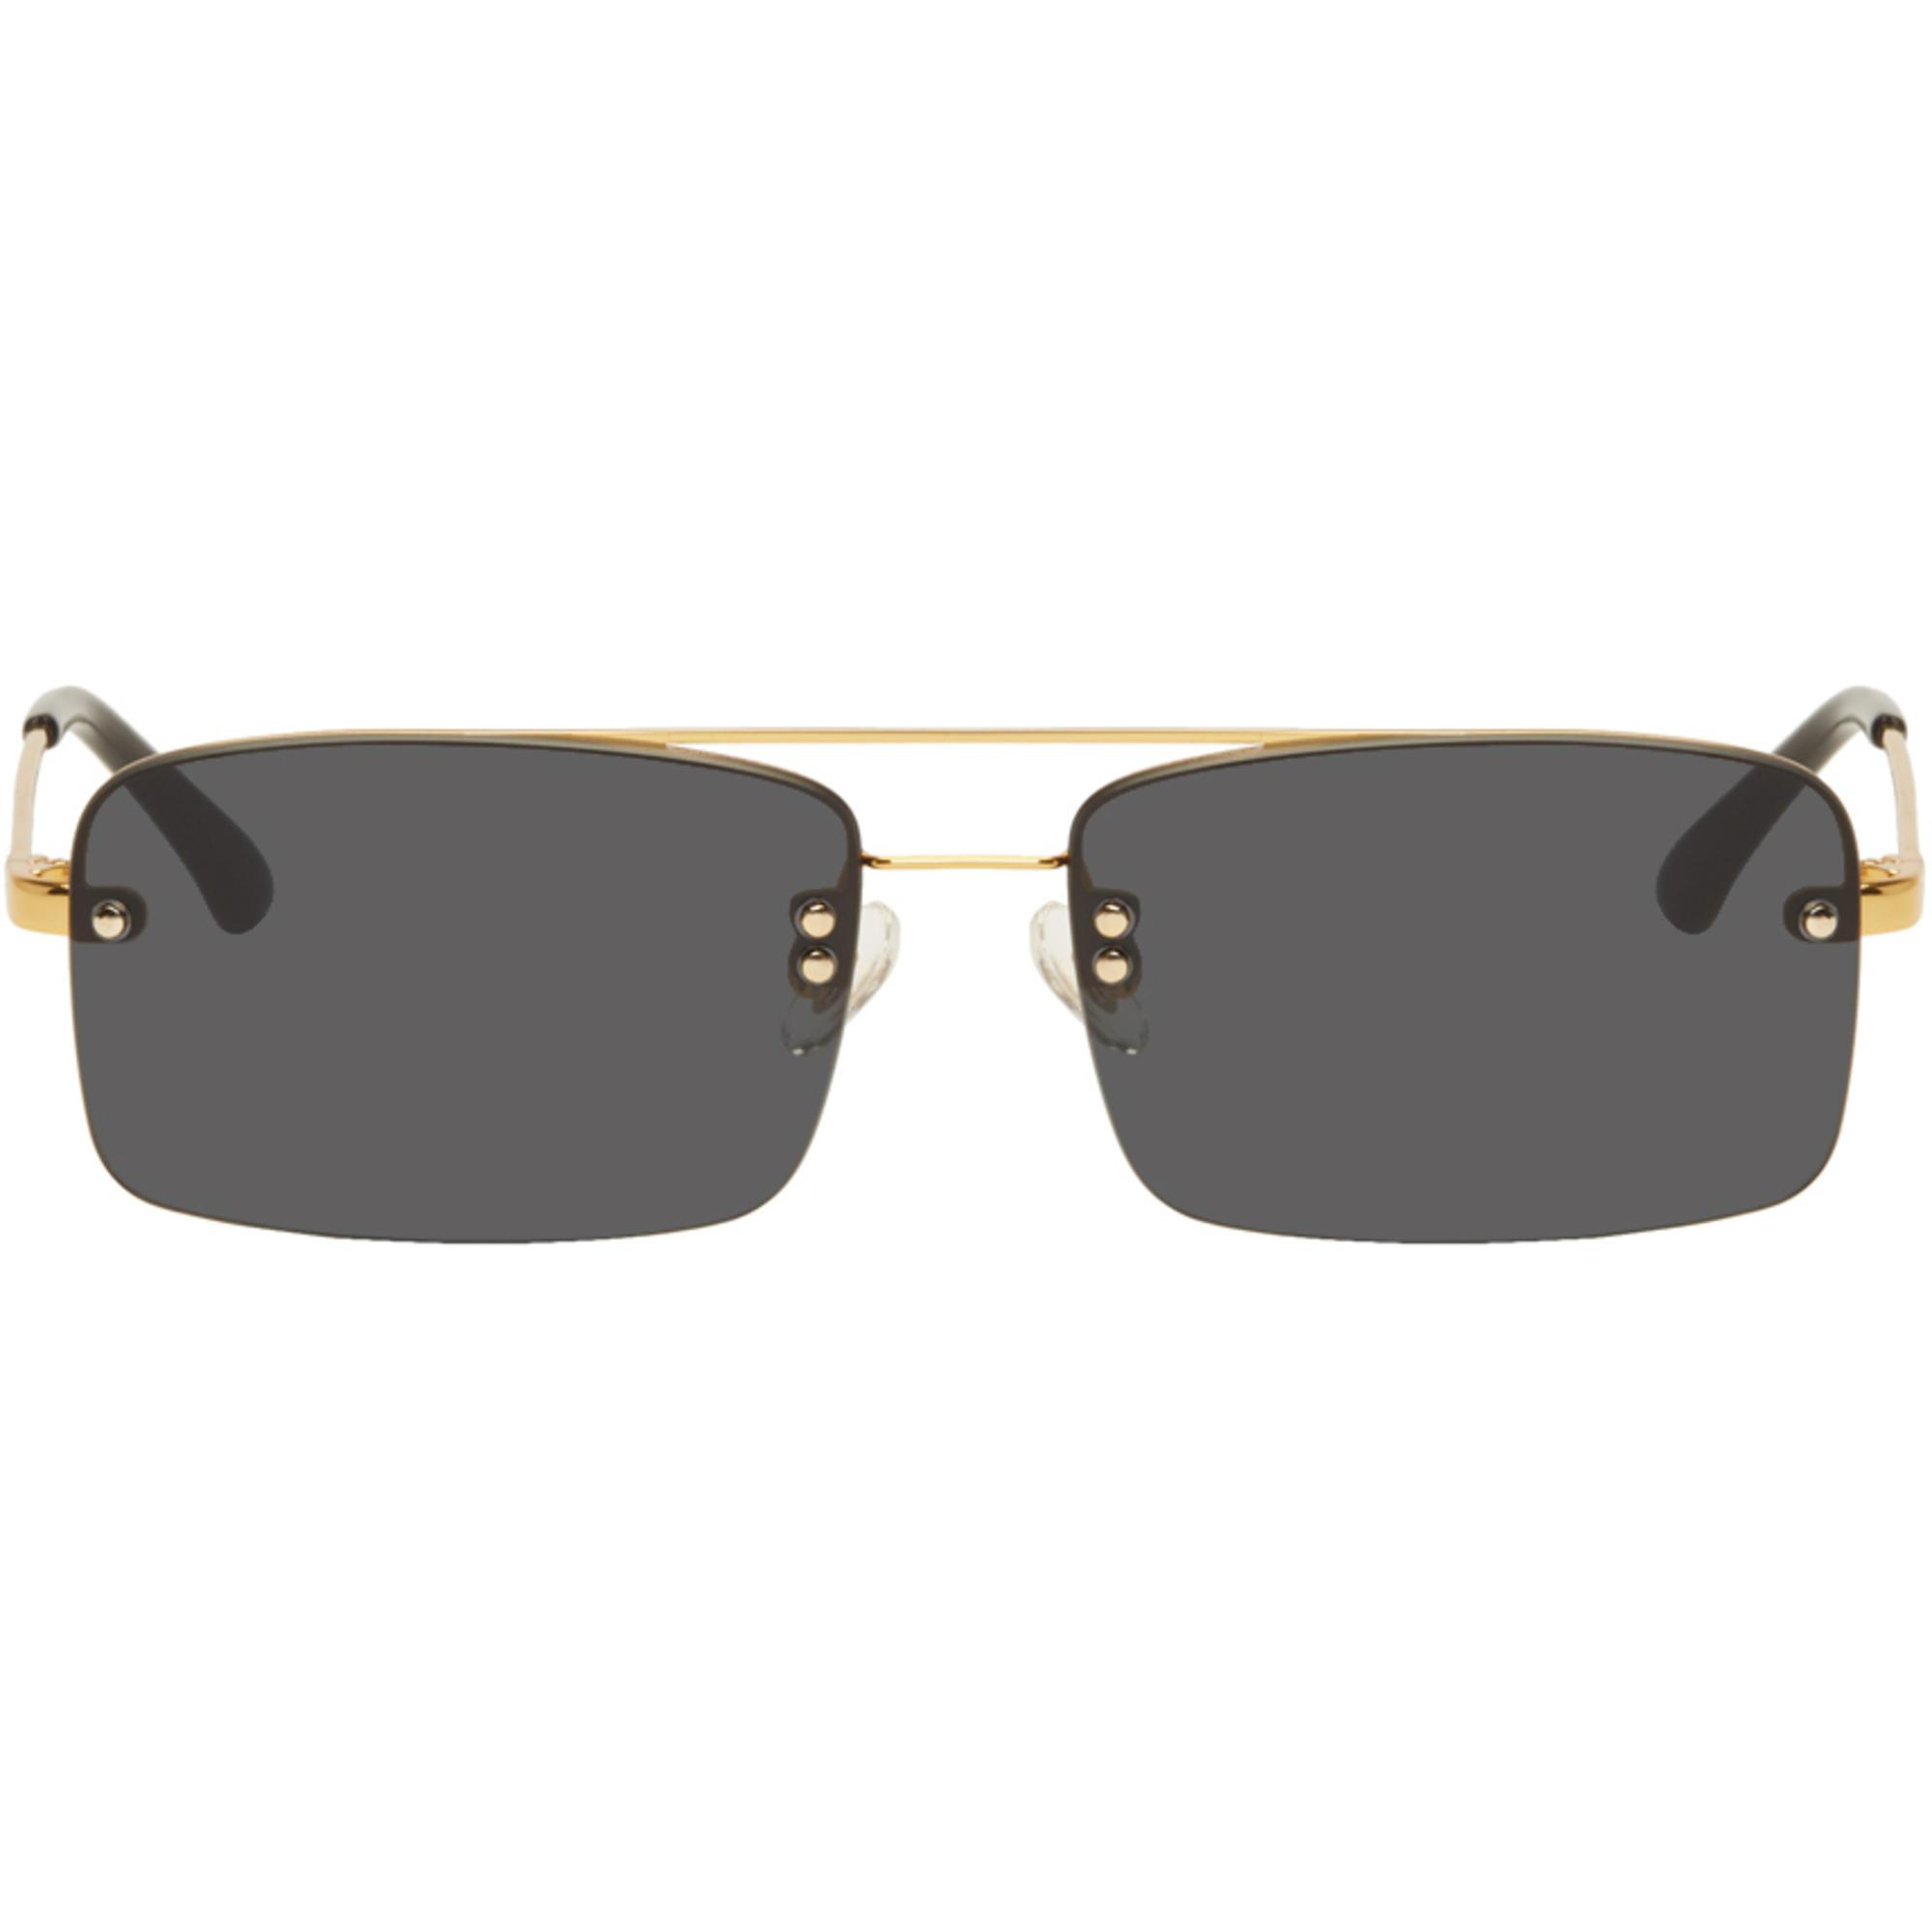 d35b7685b9 Lyst - Dries Van Noten Gold And Black Linda Farrow Edition 156 C1 ...